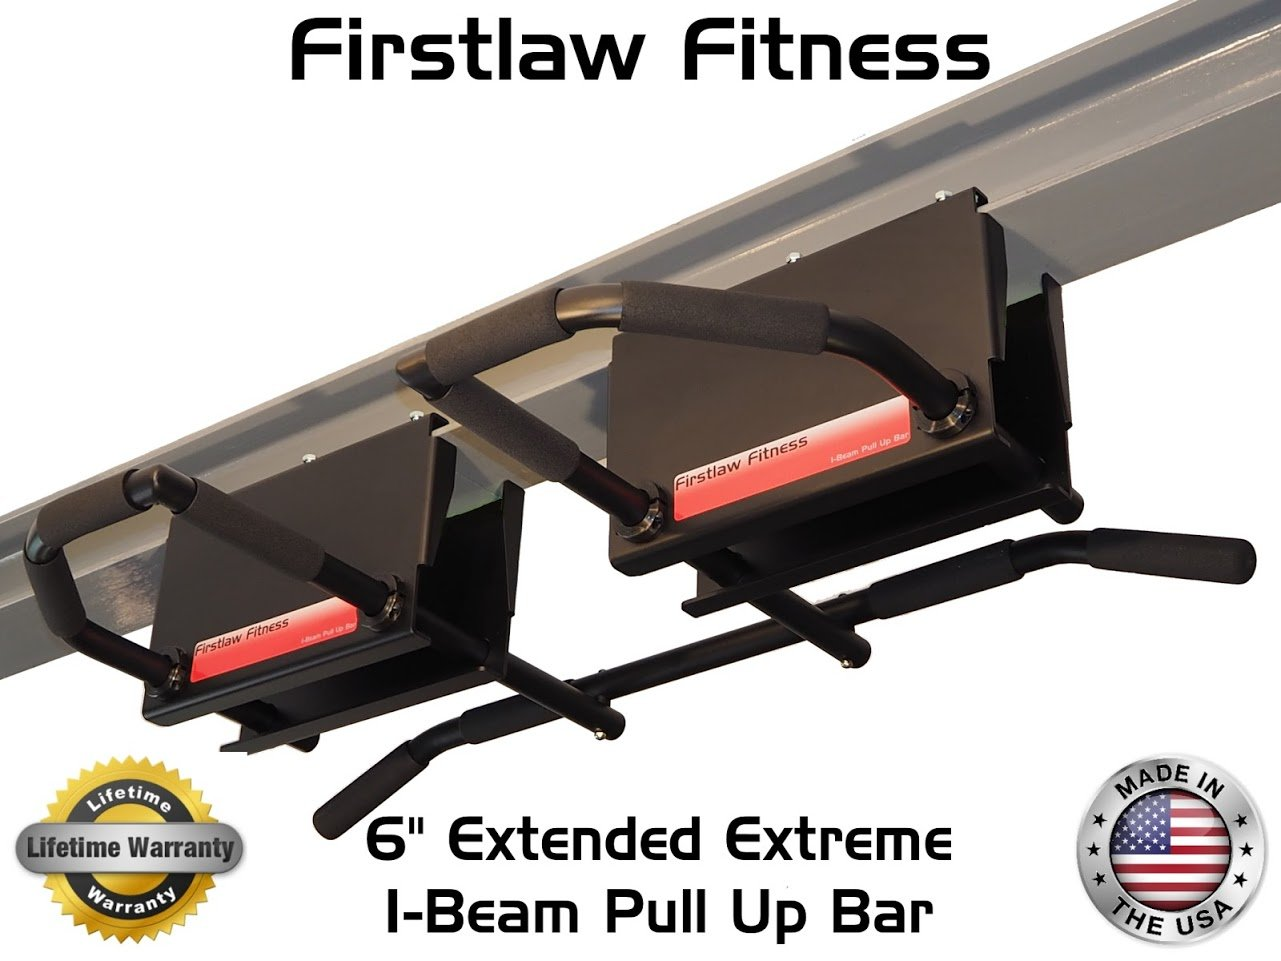 6'' Extended Extreme I-Beam Pull Up Bar - (Long Bar with Bent Ends) by Firstlaw Fitness (Image #2)